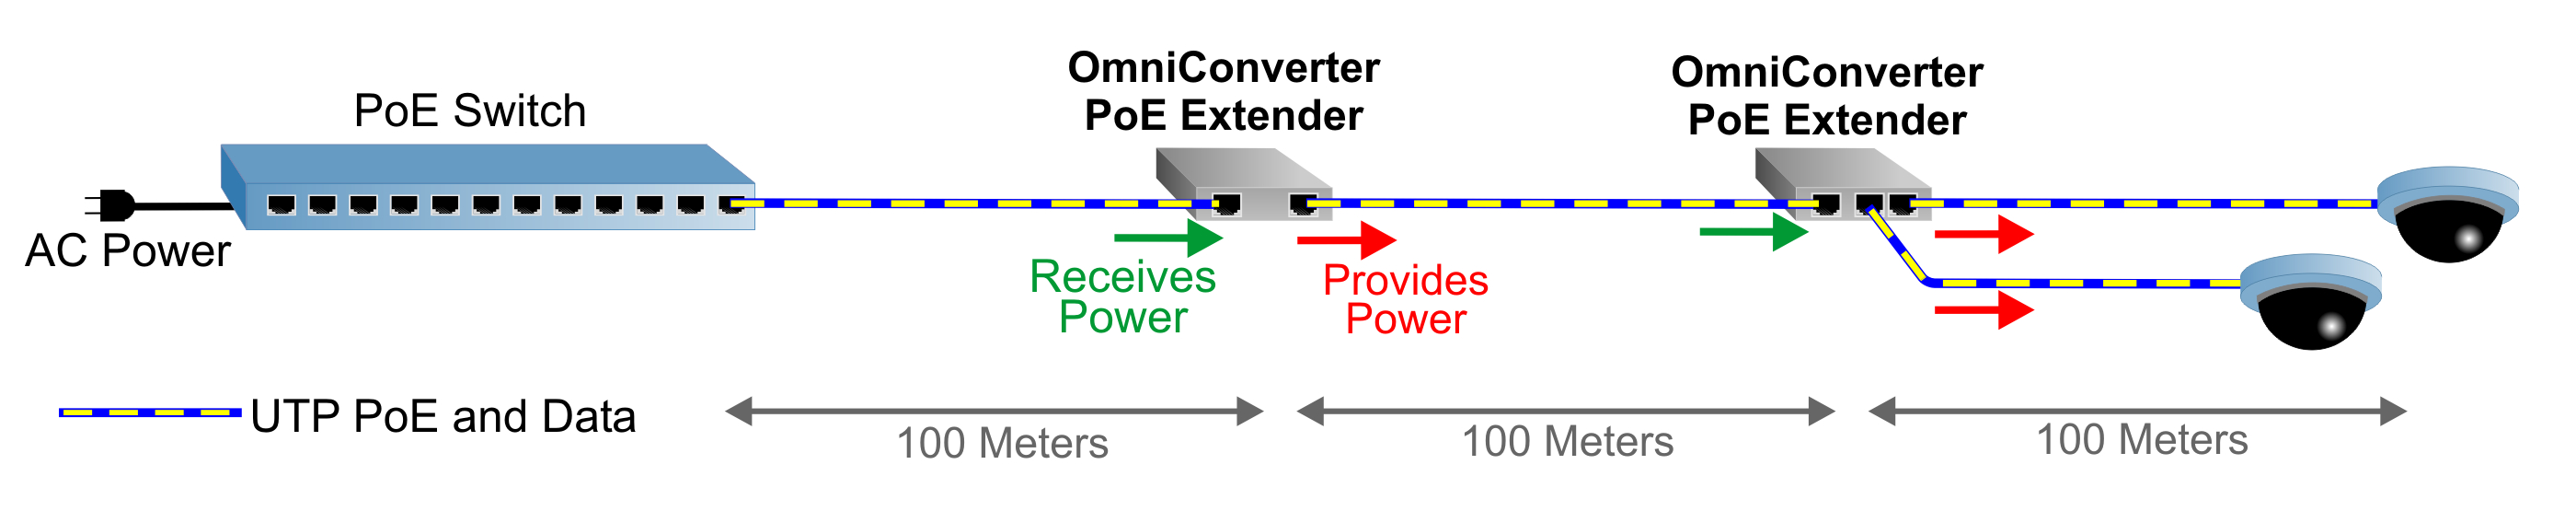 OmniConverter Application